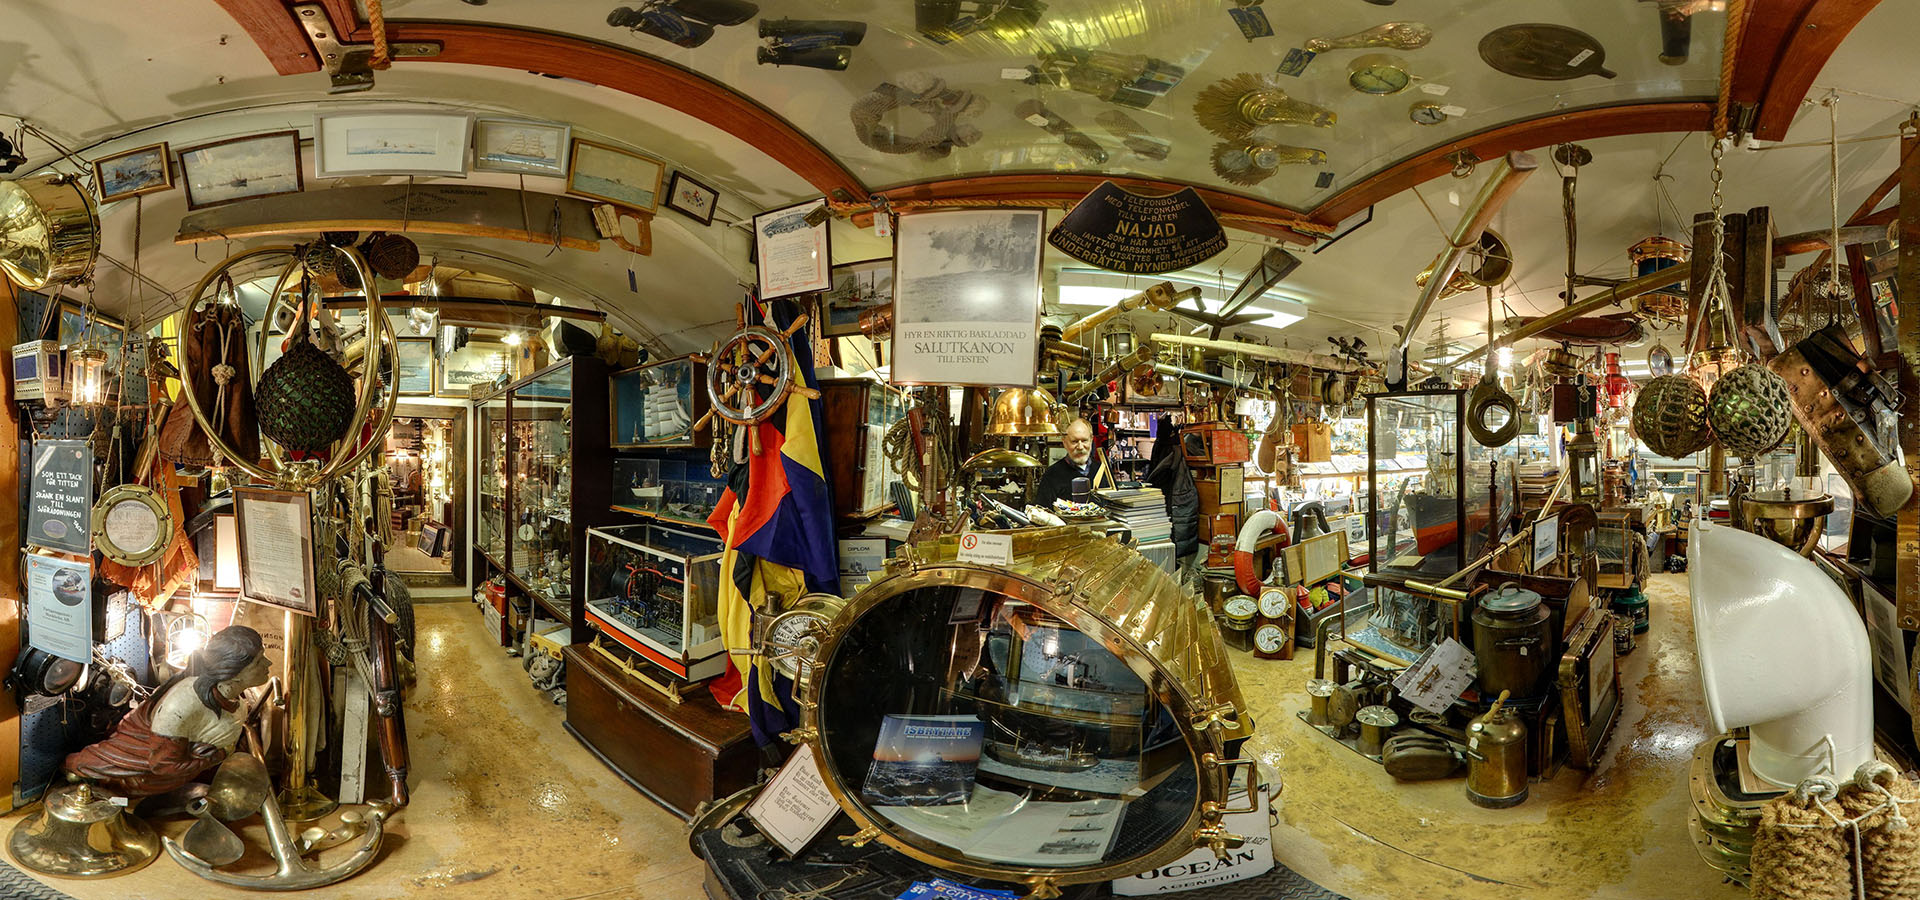 Maritim-Antique-Shop_Stockholm-Historical_360_degree_Virtual_Tours_OCEAN.LV_